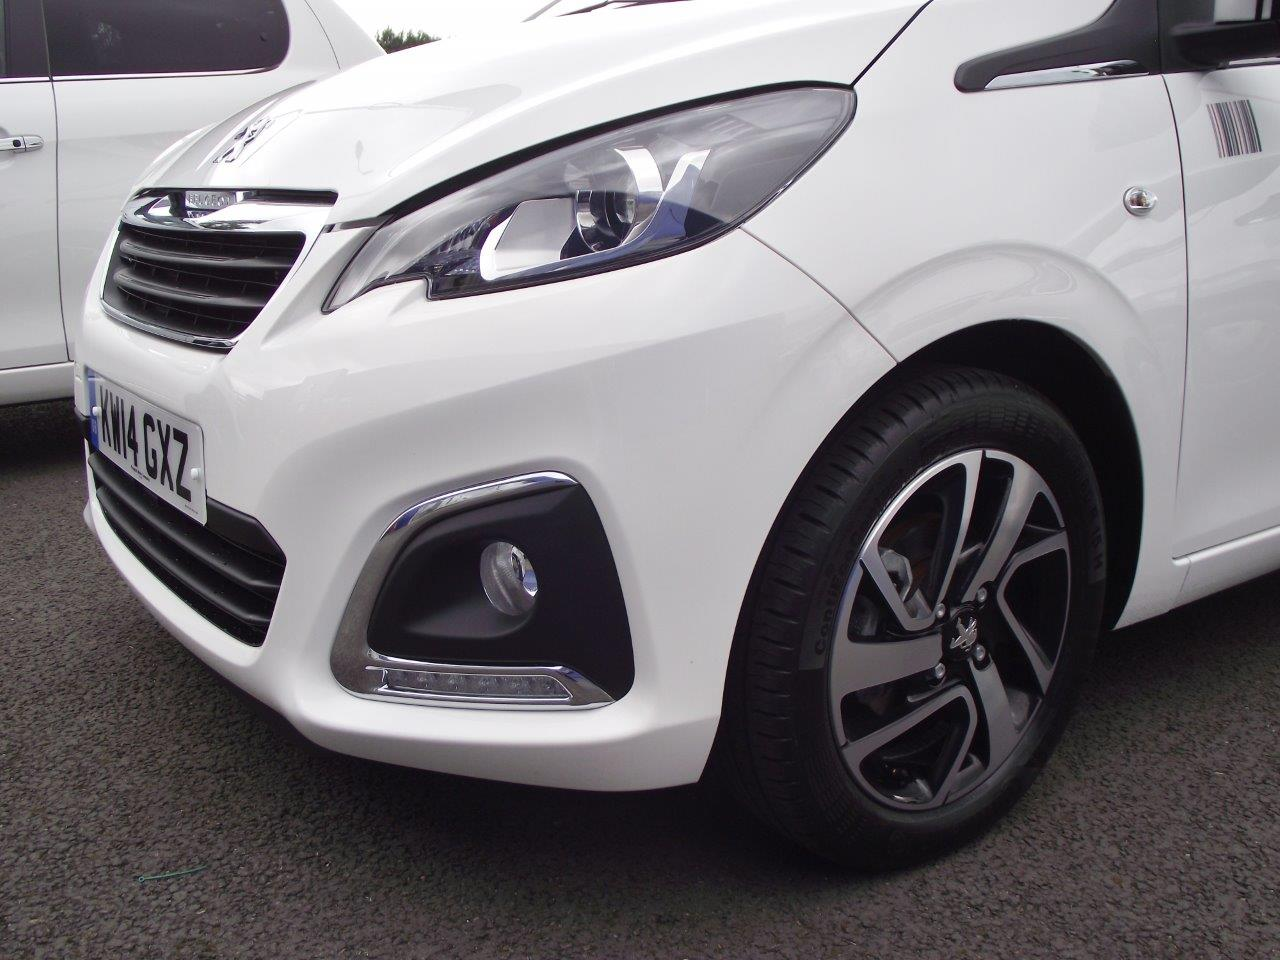 Used Car Dealers Leicester >> ROAD TEST REPORT: Peugeot 108 1.2 VTi Puretech Top Allure 5...